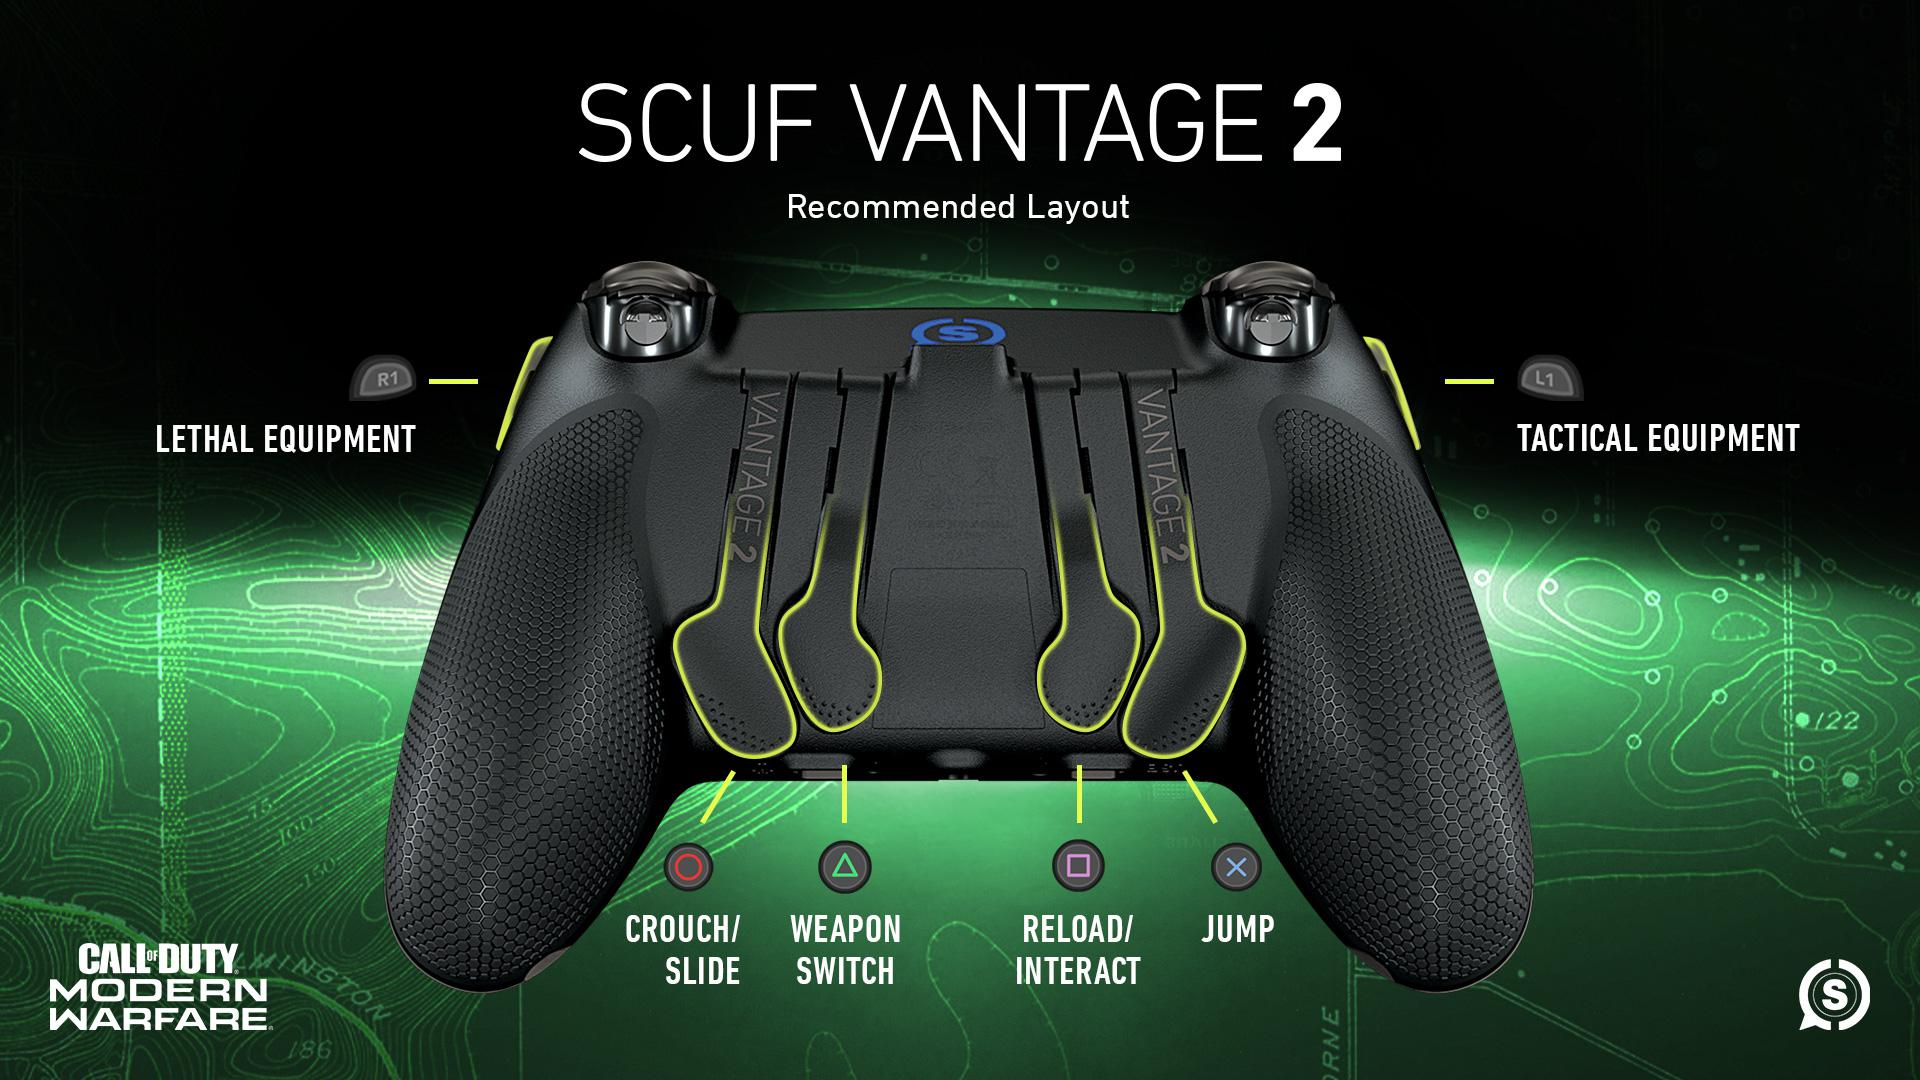 Call of Duty Modern Warfare Vantage 2 Controller Configuration